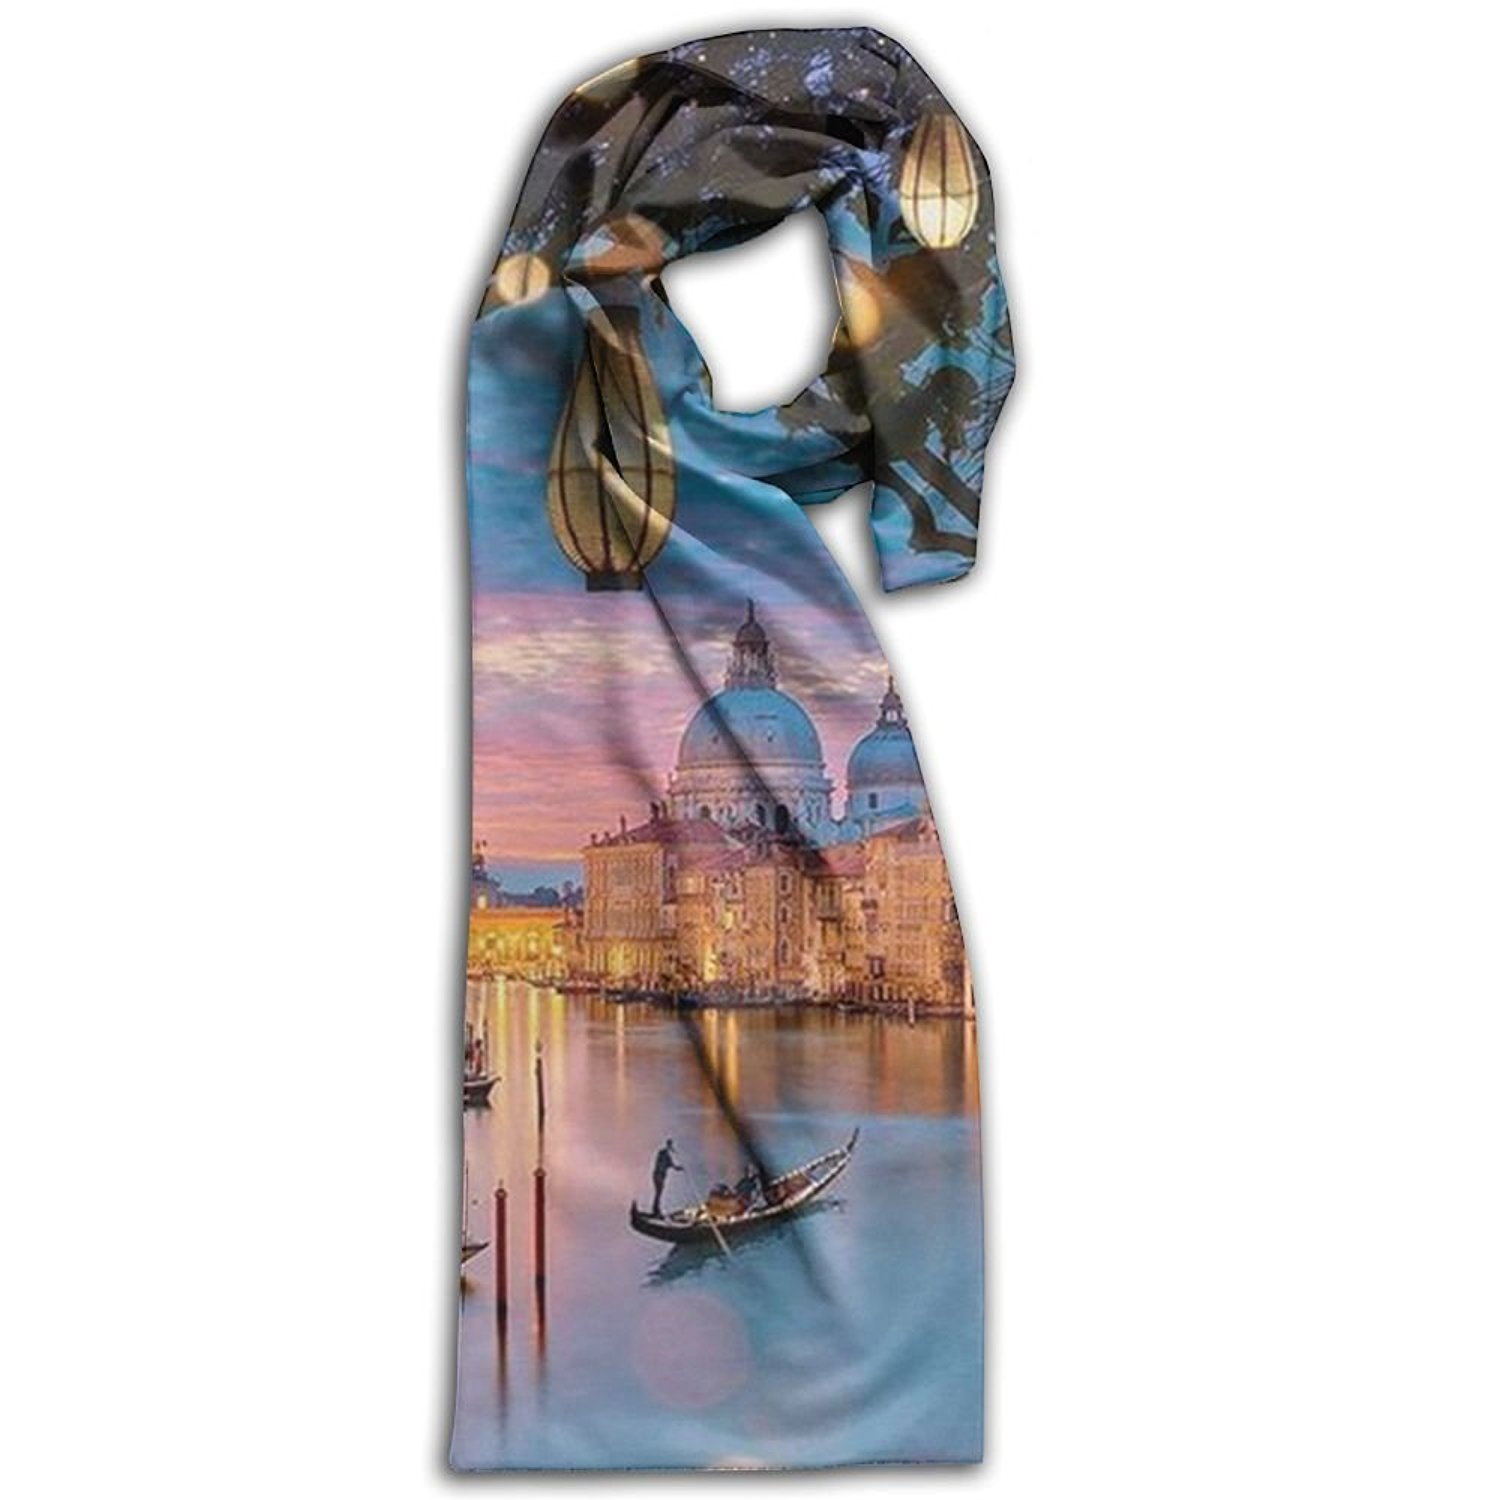 e5cf719249445 Get Quotations · Venice Scarf Big Oblong Long Scarves Classic Checked Shawl  For Sticks Travel For Women Or Men